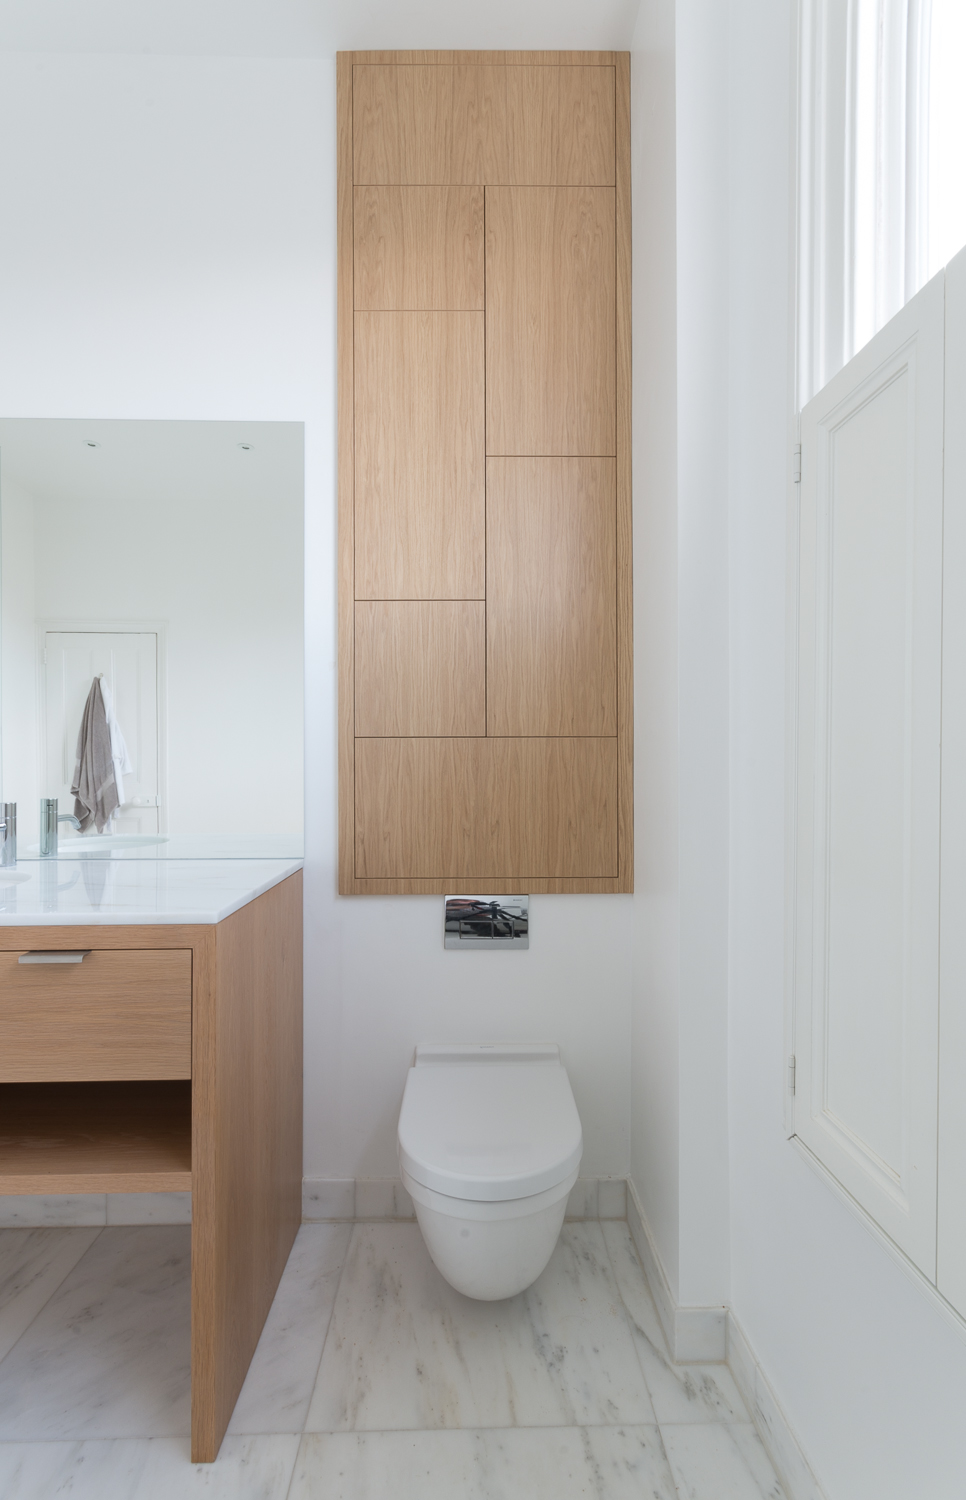 Front view of our bespoke fitted bathroom cabinet and unit.